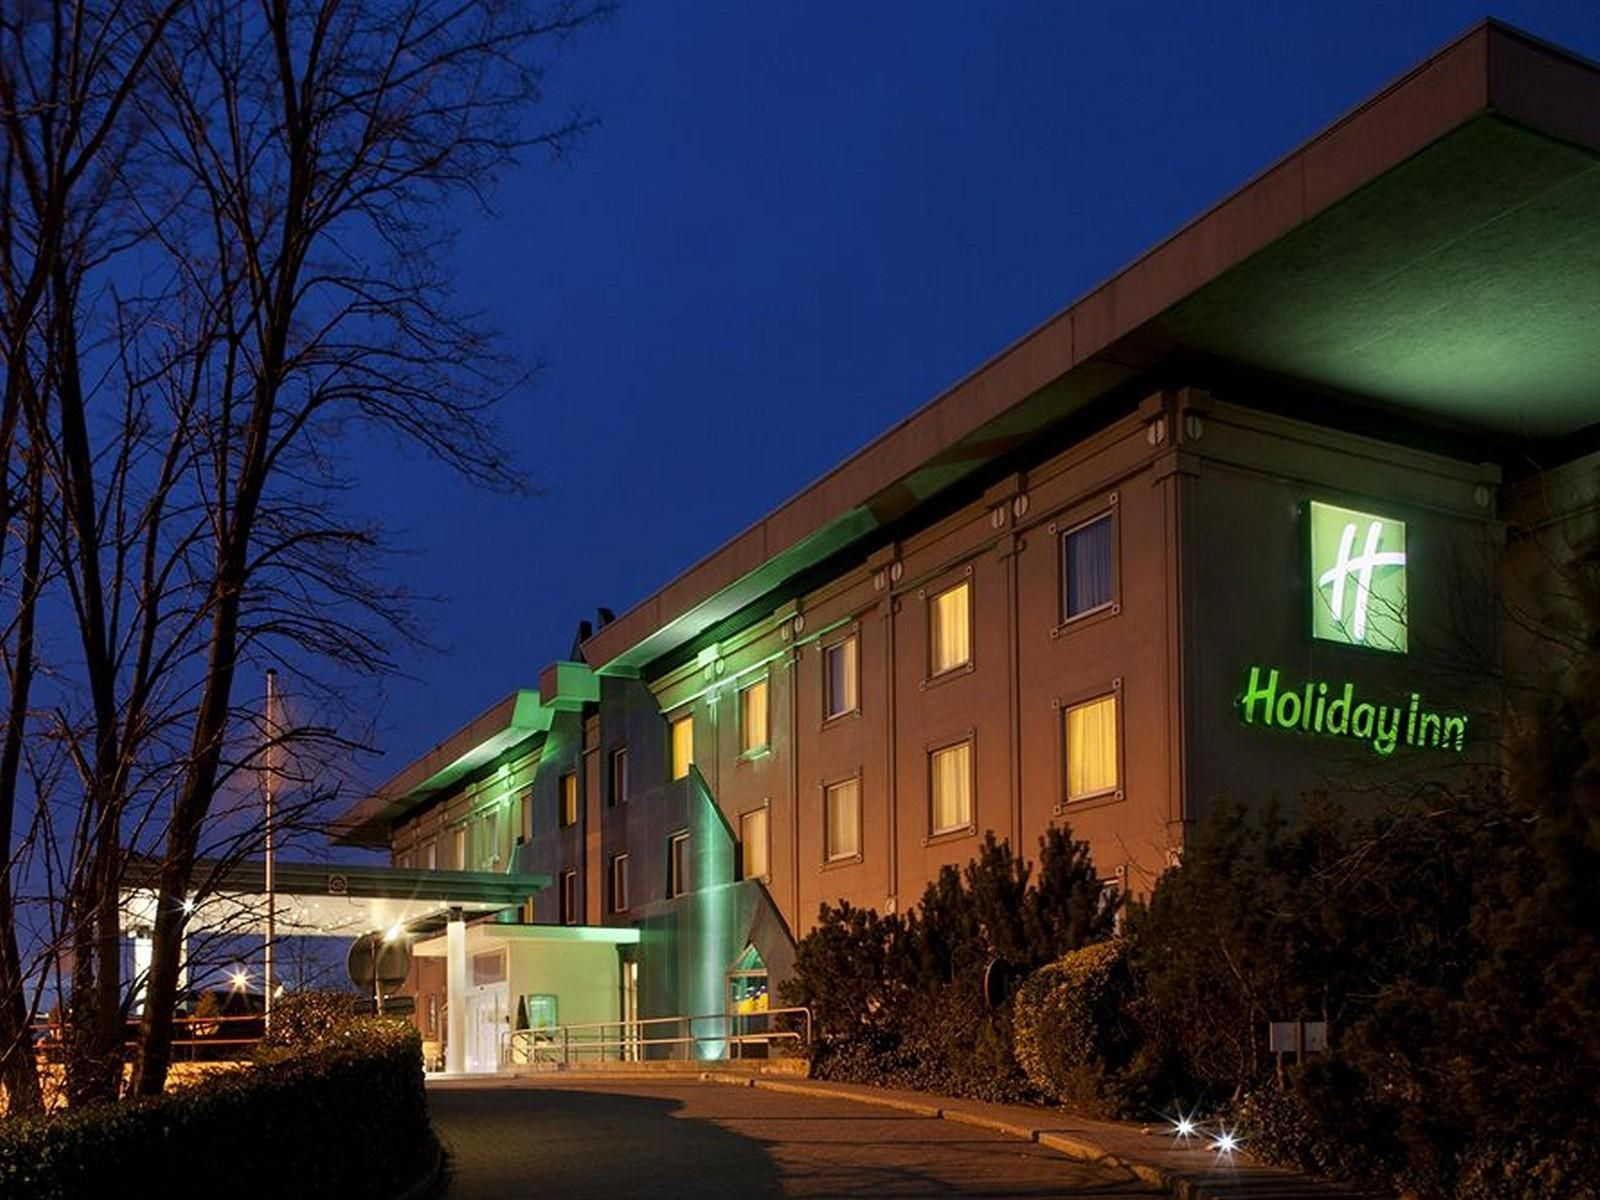 Ghent Holiday Inn Gent Expo Belgium, Europe Holiday Inn